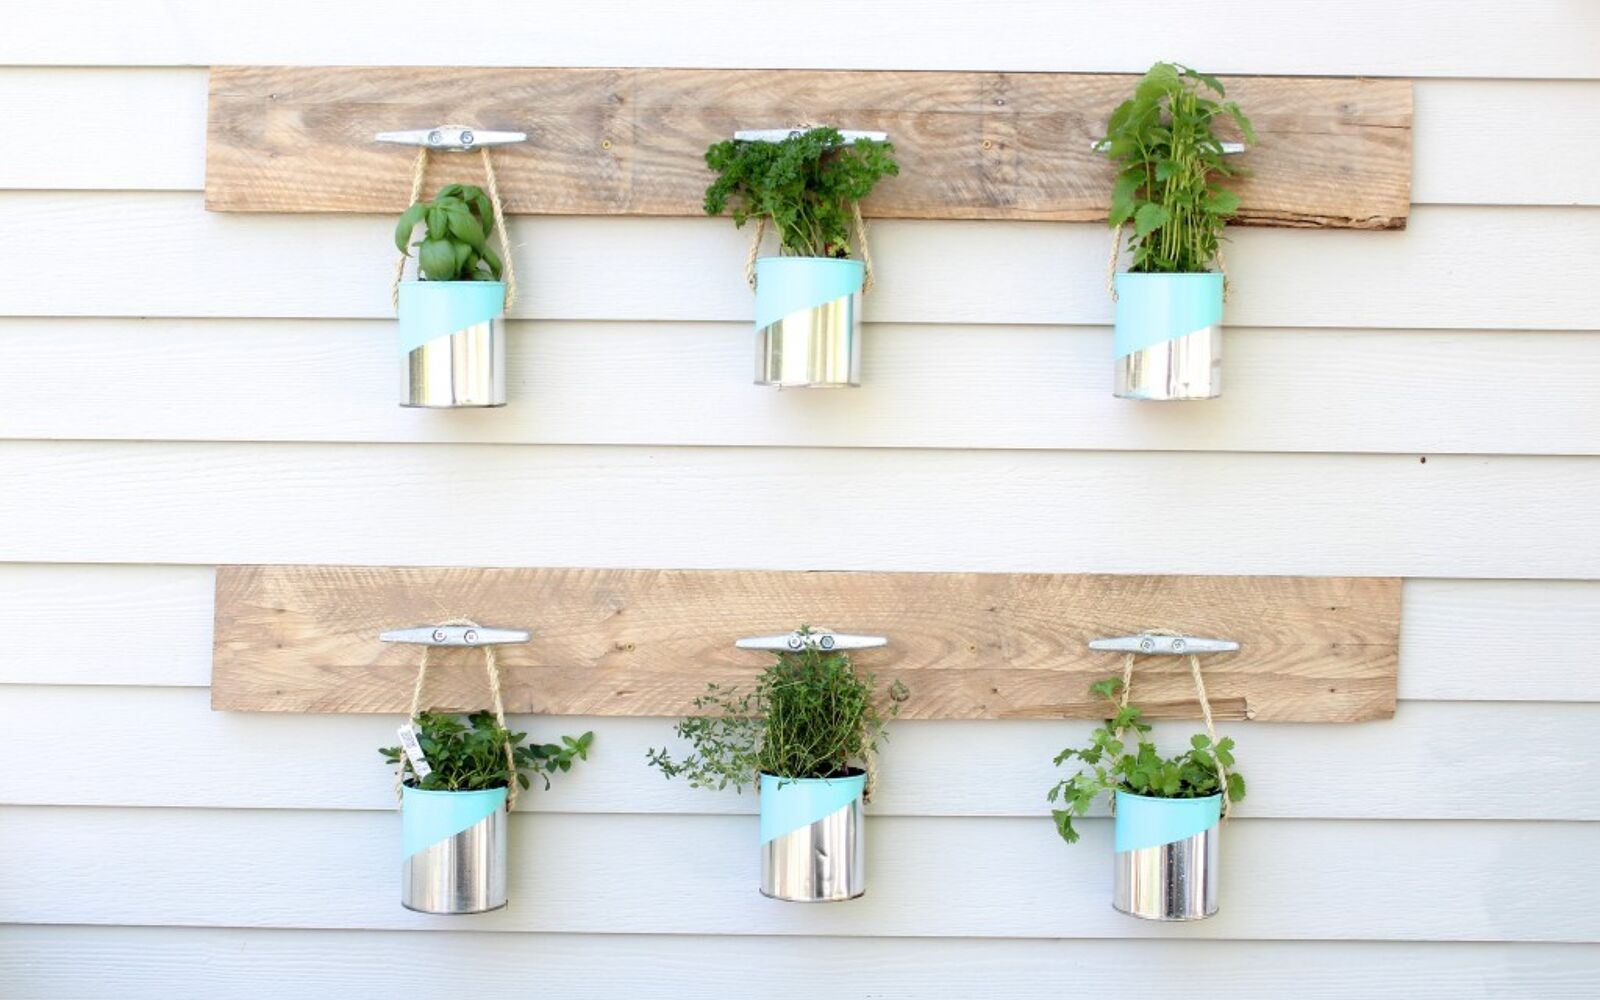 s save your old cans for these 30 home decor ideas, Use painted cans for a hanging planter